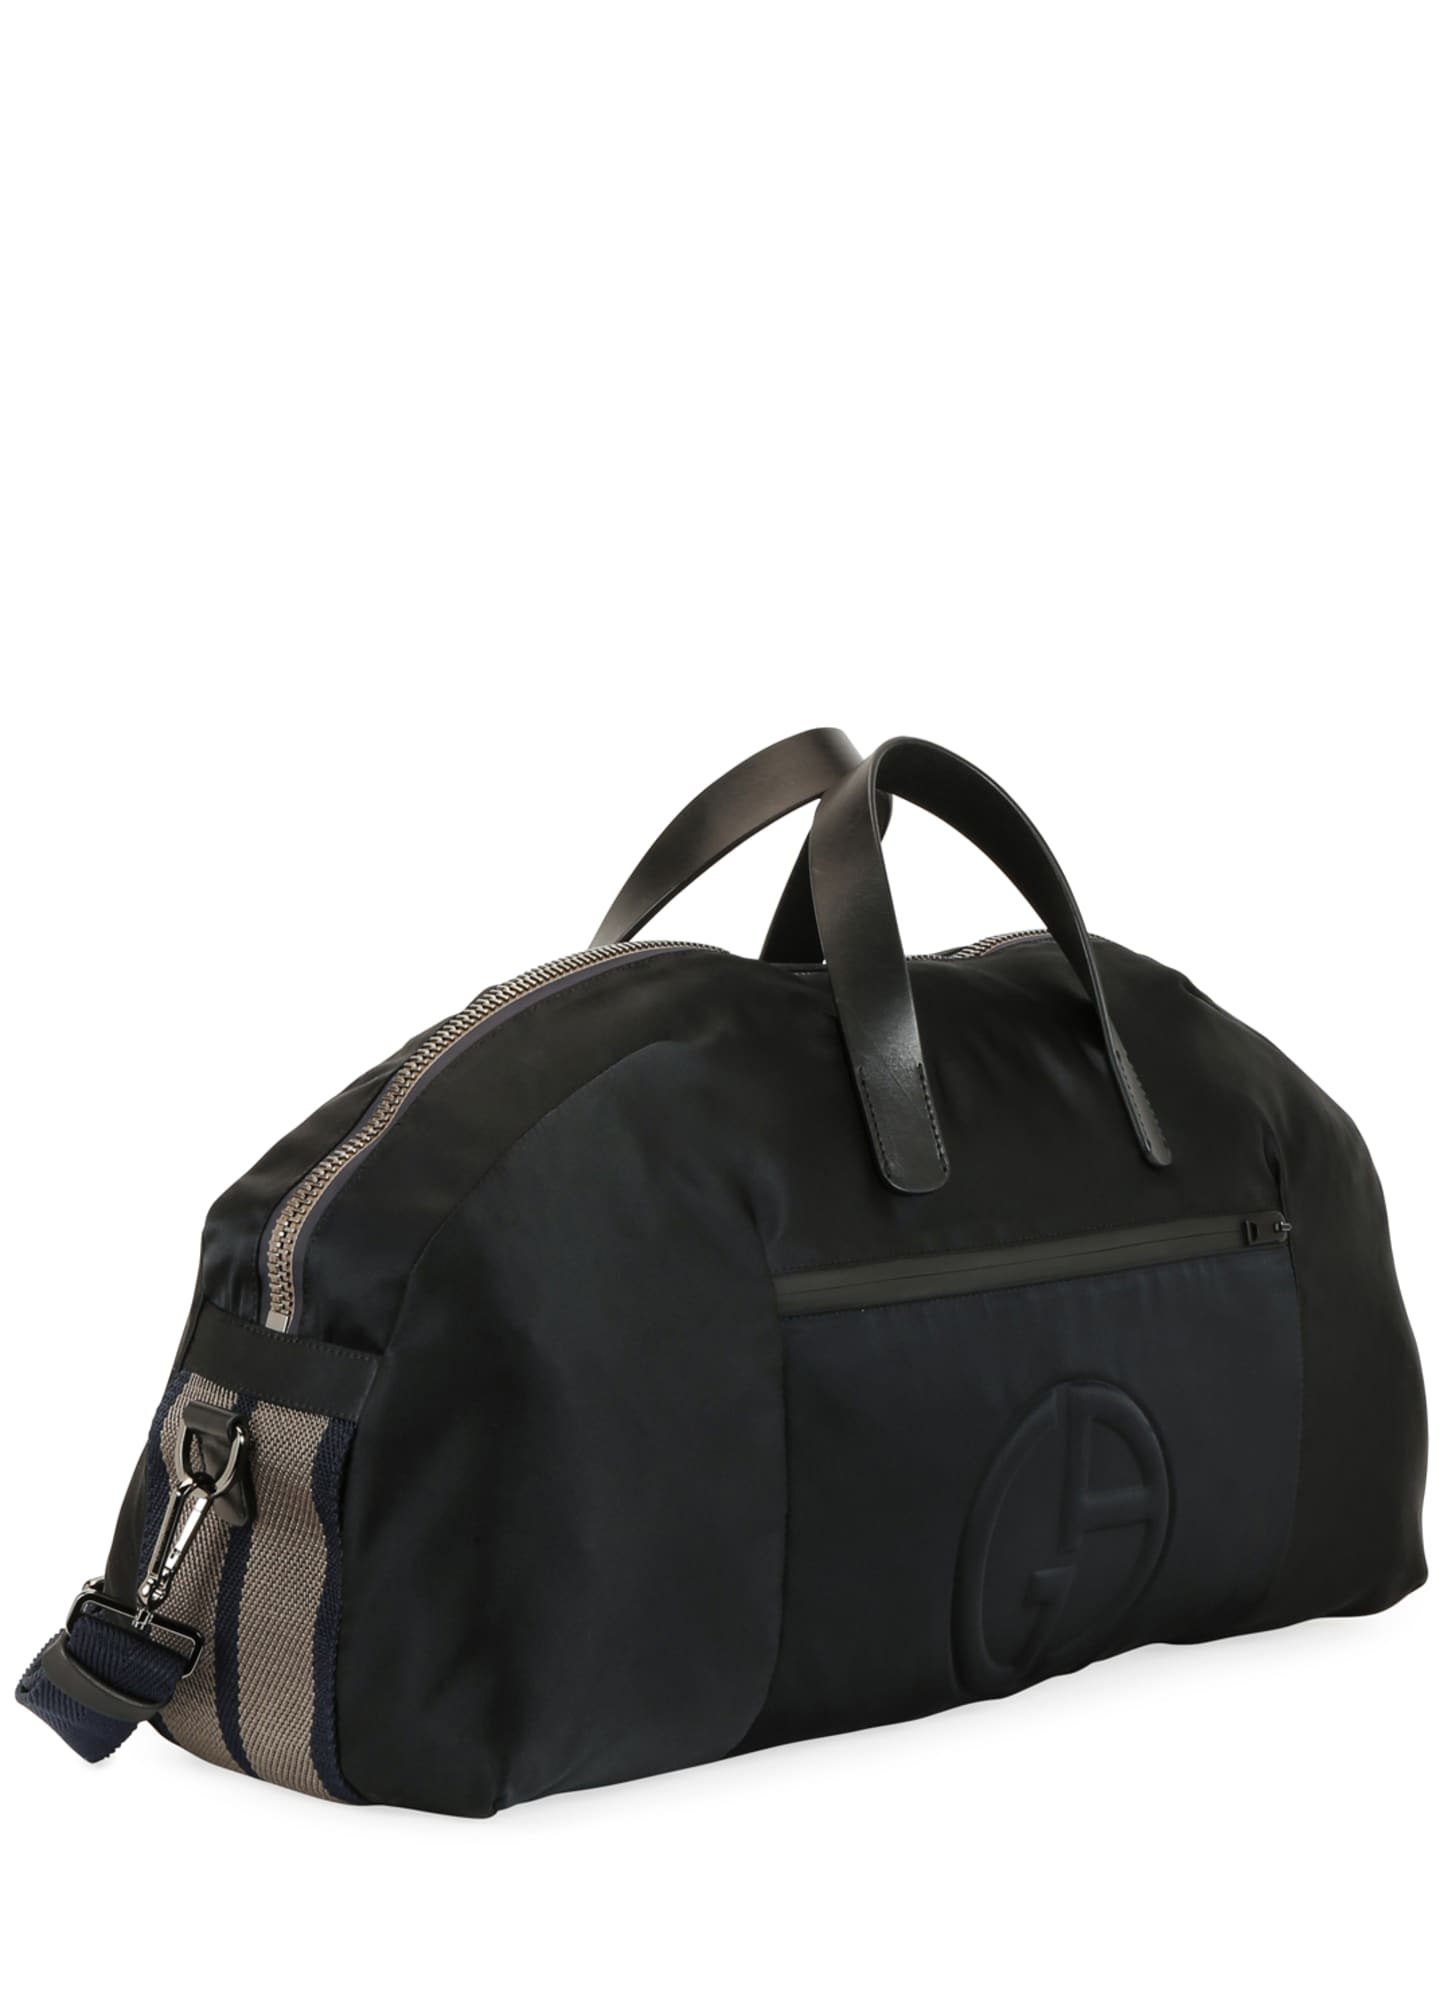 Image 3 of 4: Men's Nylon Carryall Duffel Bag, Black